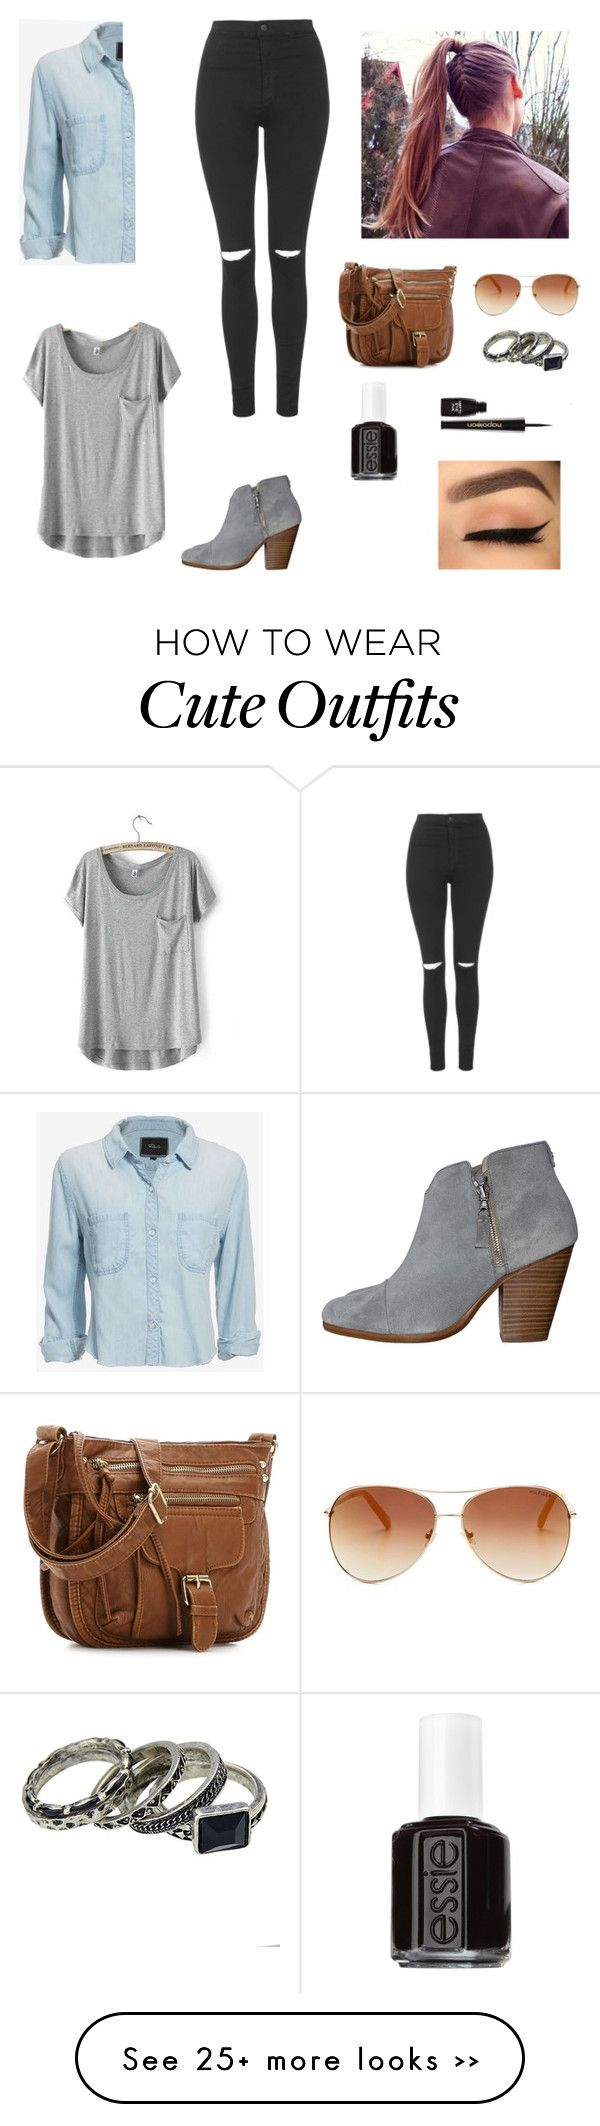 Cute Day Out Fall Outfit By Teachersmk On Polyvore